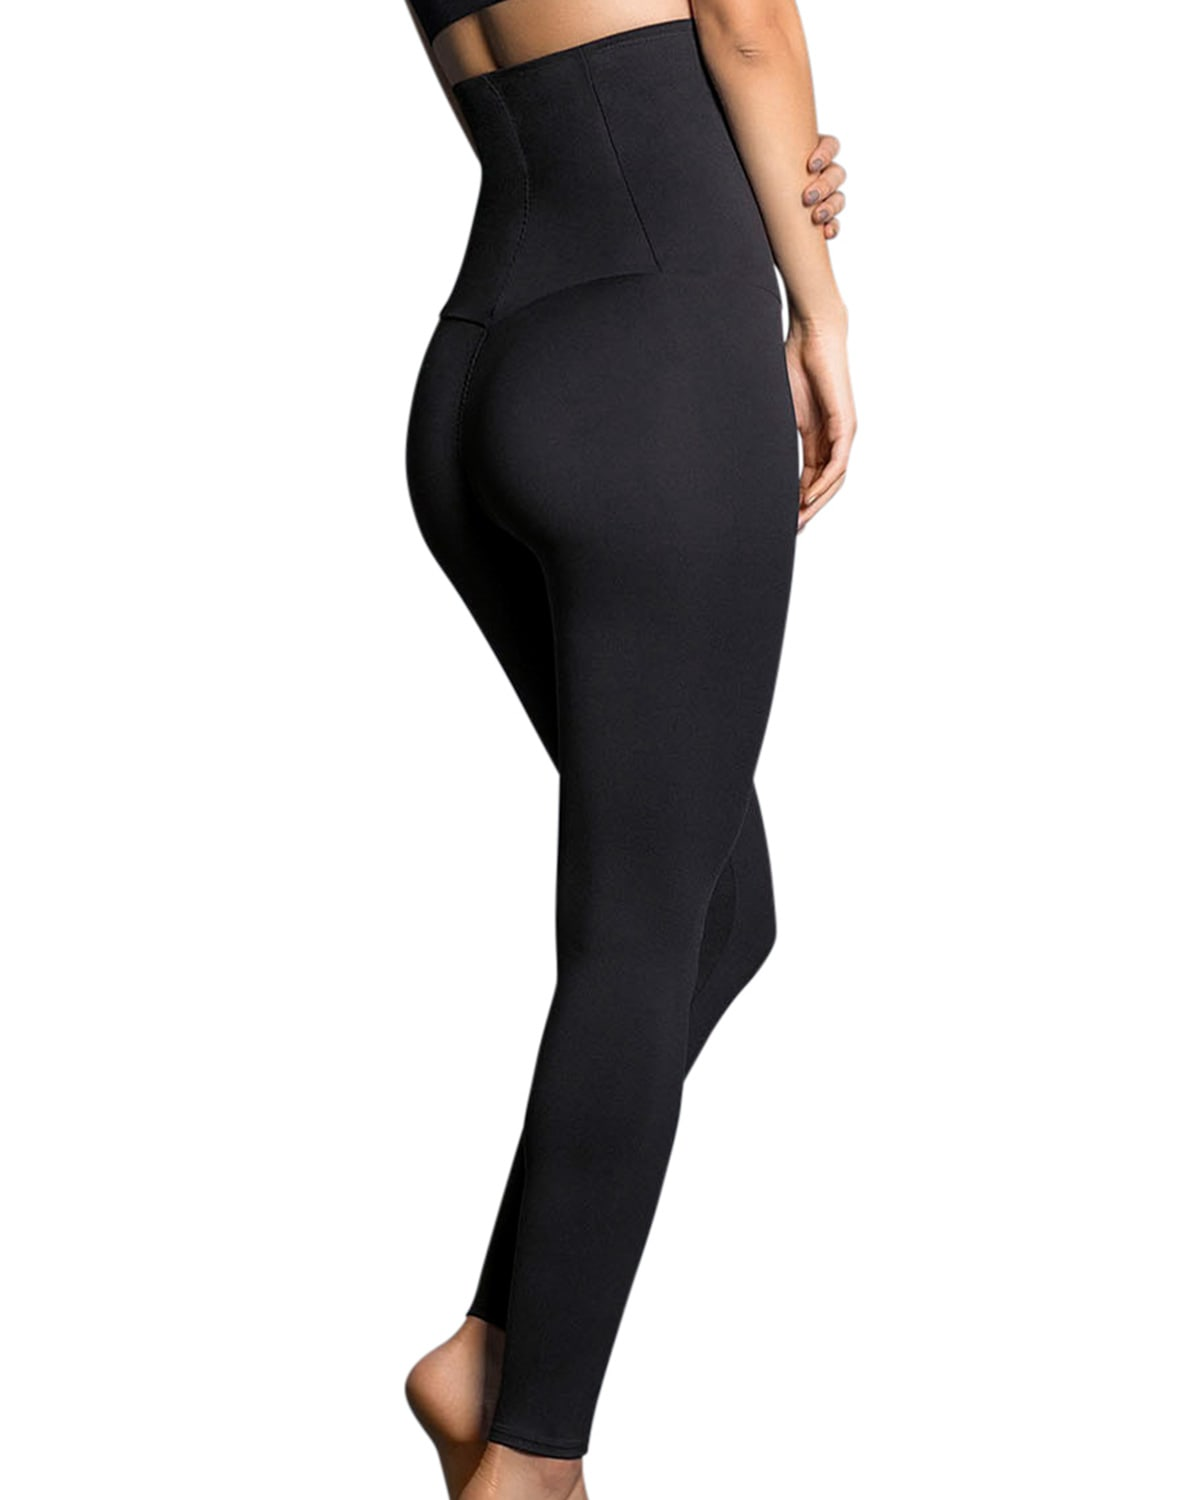 12101ff0f2b Extra High-Waisted Firm Compression Legging - ActiveLife | Leonisa